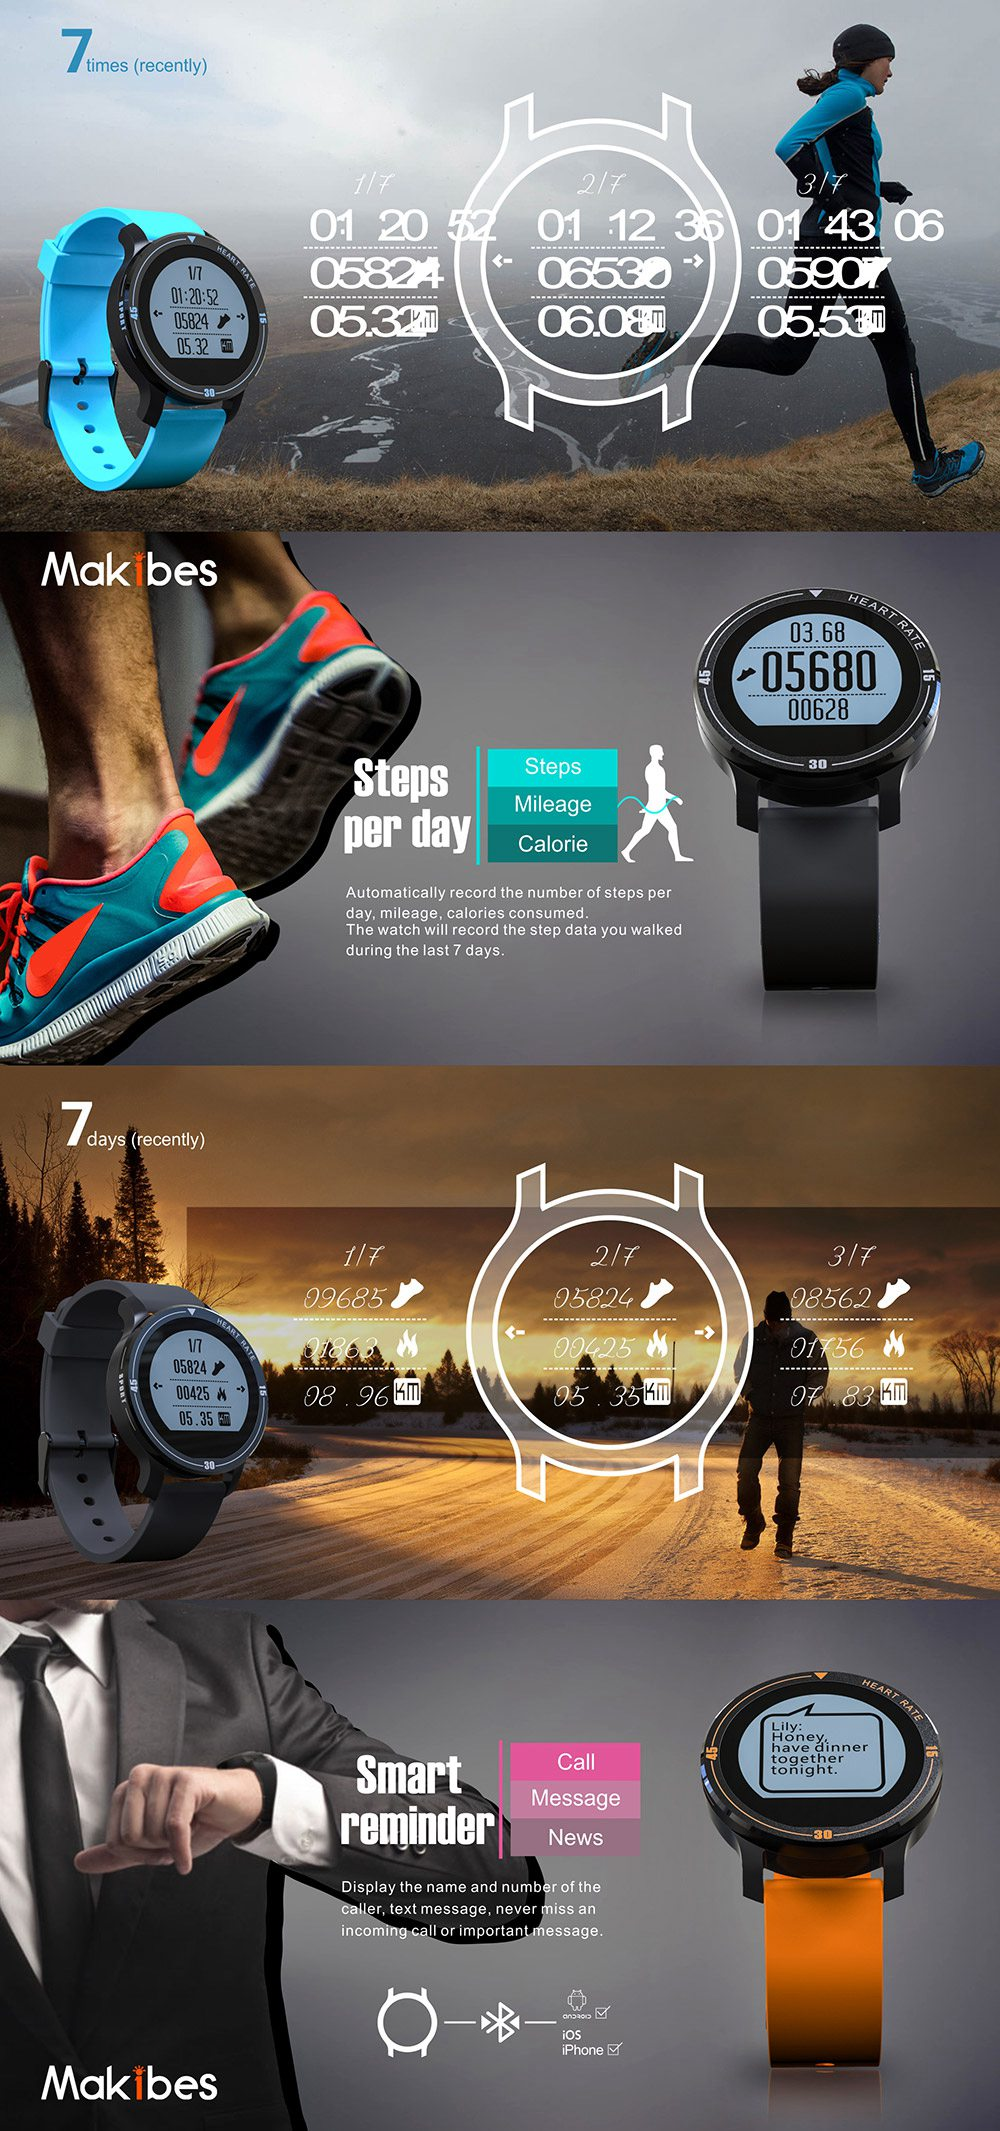 MAKIBES AEROBIC A1 SMART SPORTS WATCH BLUETOOTH DYNAMIC HEART RATE MONITOR SMARTWATCH S200 231407 18